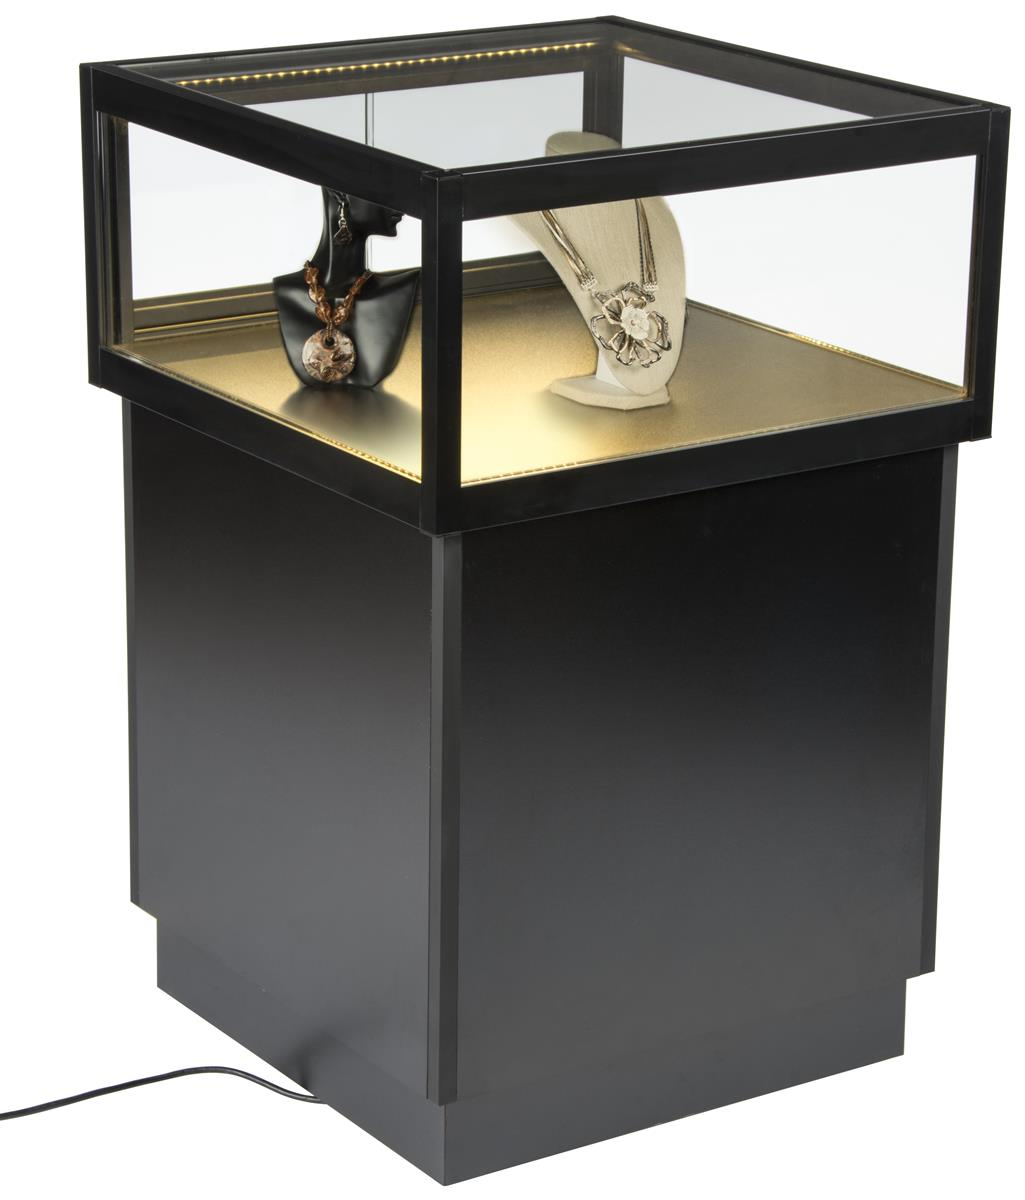 Led Display Case Pedestal